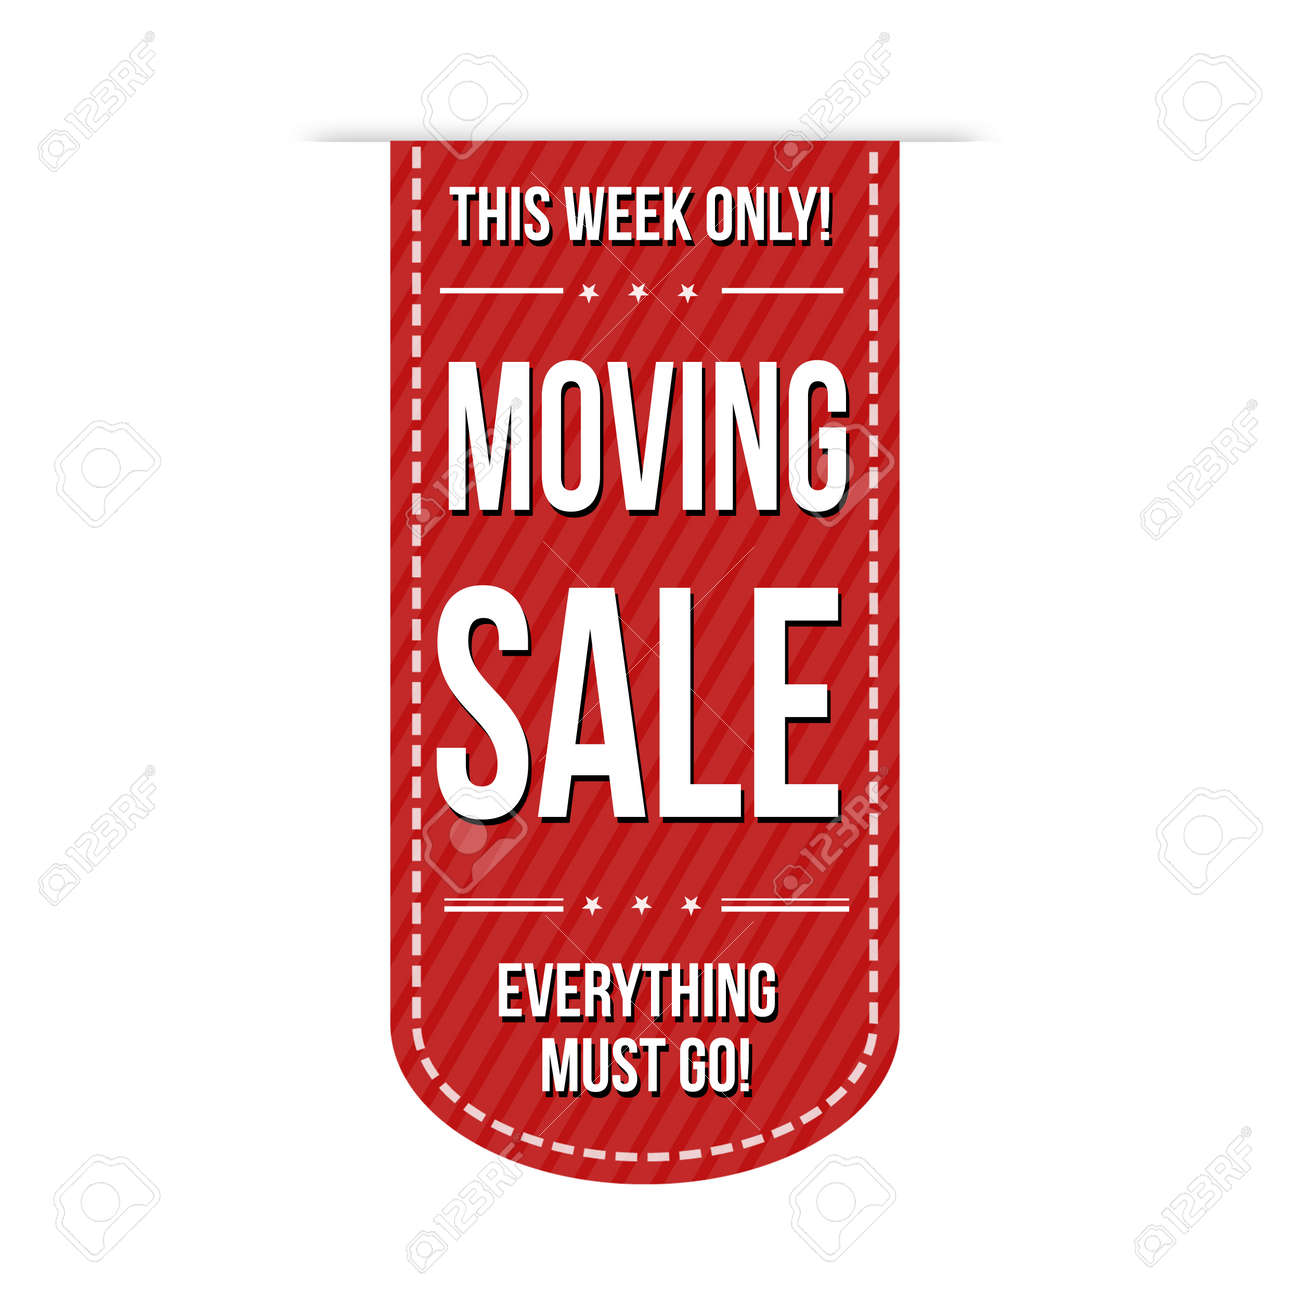 moving sale banner design over a white background vector